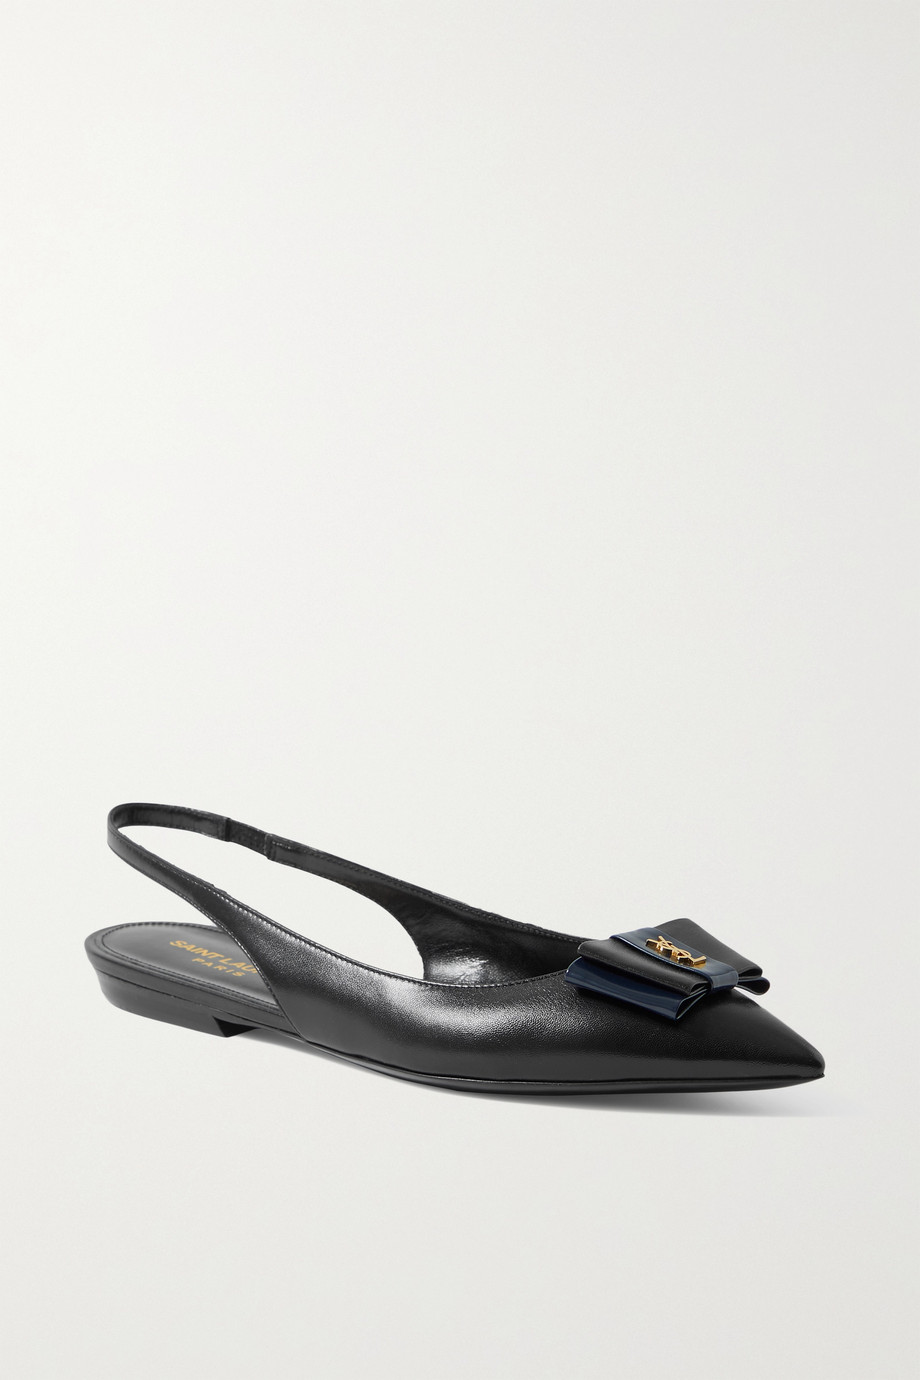 SAINT LAURENT Anais bow-embellished leather slingback point-toe flats